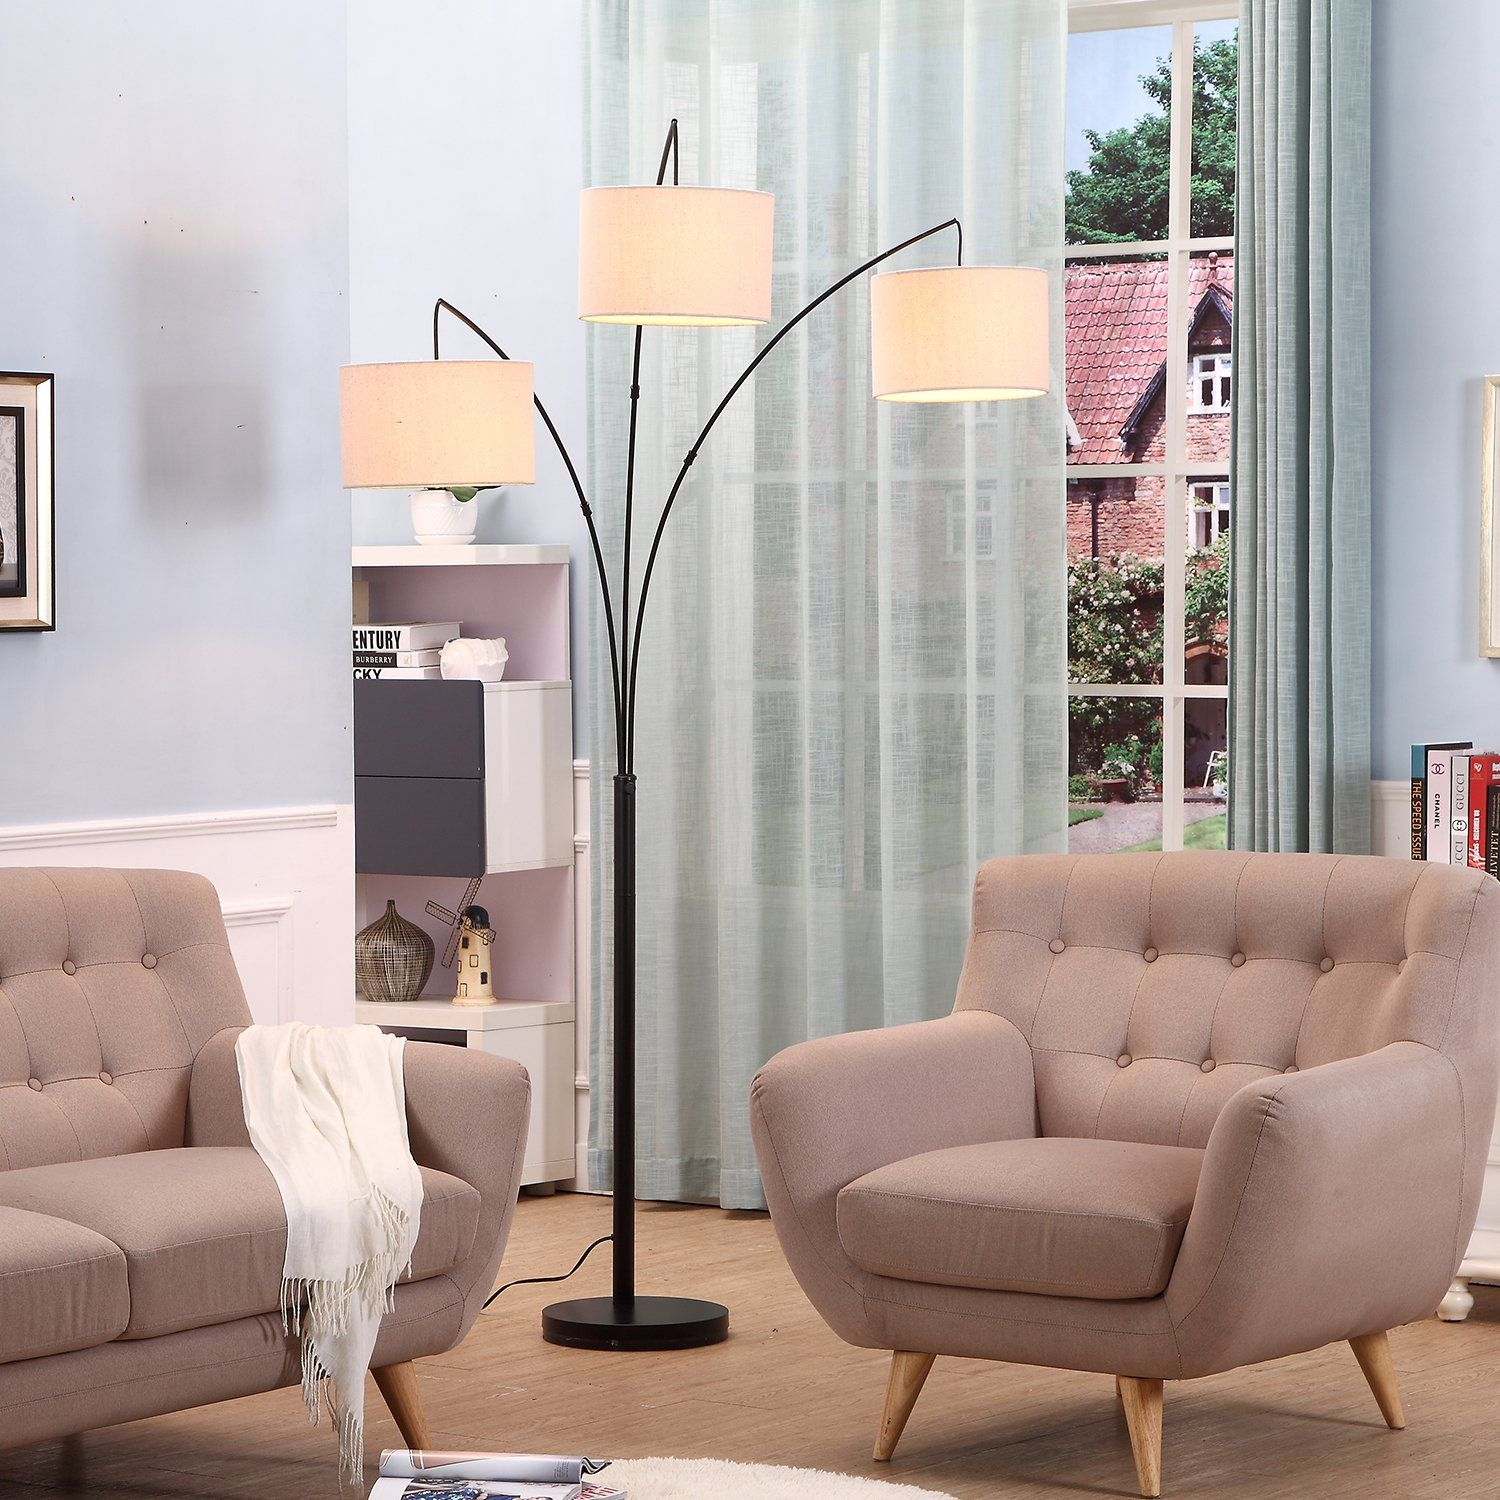 Brightech Trilage Led Floor Lamp A Tall Pole Modern Industrial Standing 3 Arm Arc 3 Arc Floor Lamps Living Room Floor Lamps Living Room Chandelier Floor Lamp #tall #living #room #floor #lamps